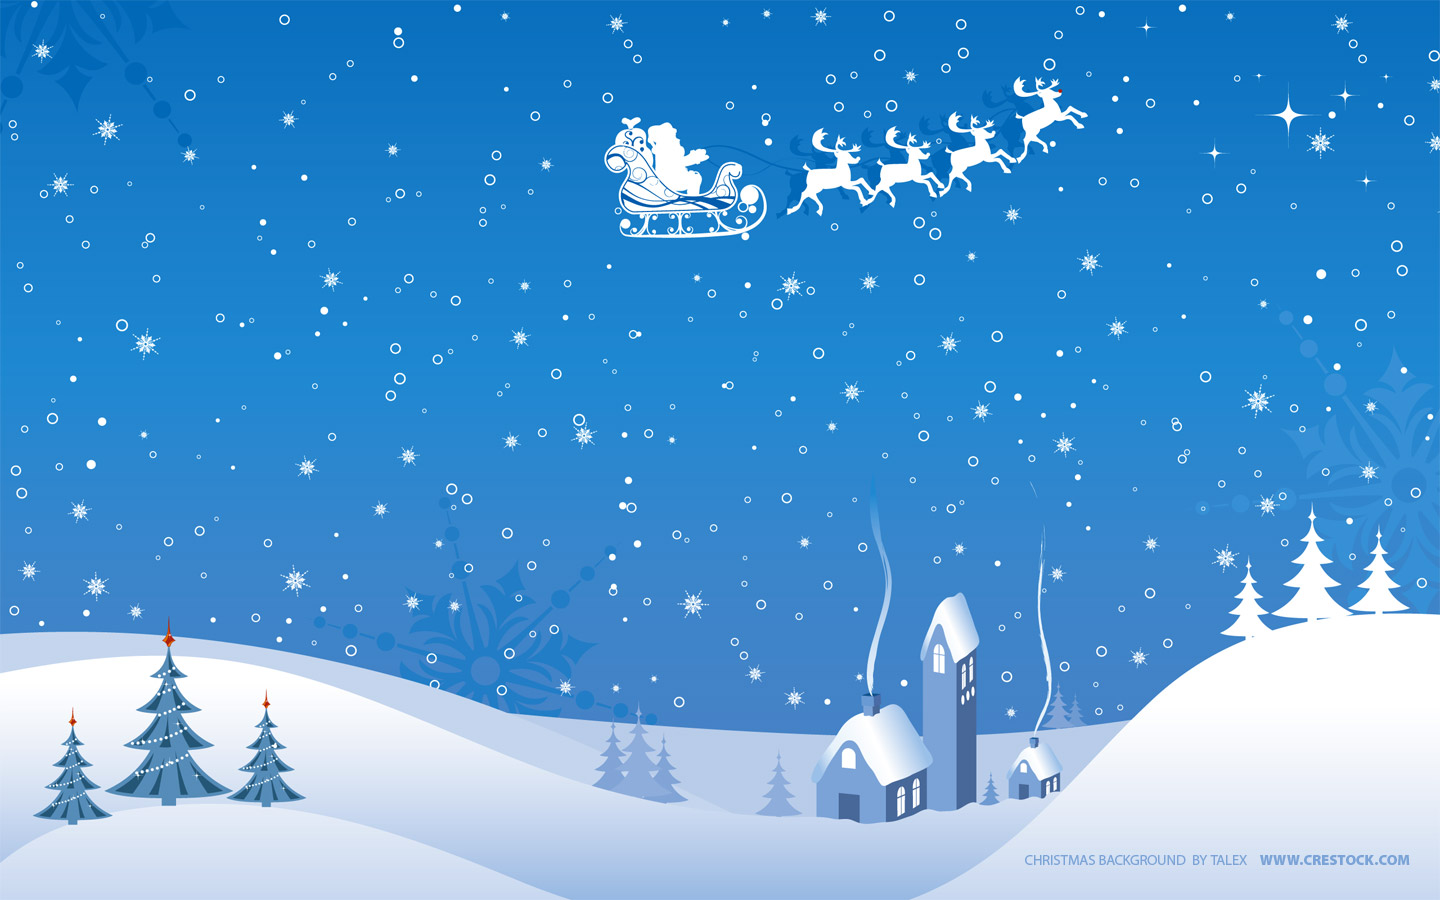 animated wallpapers scene wallpaper christmas content border 1440x900 - Animated Christmas Scenes